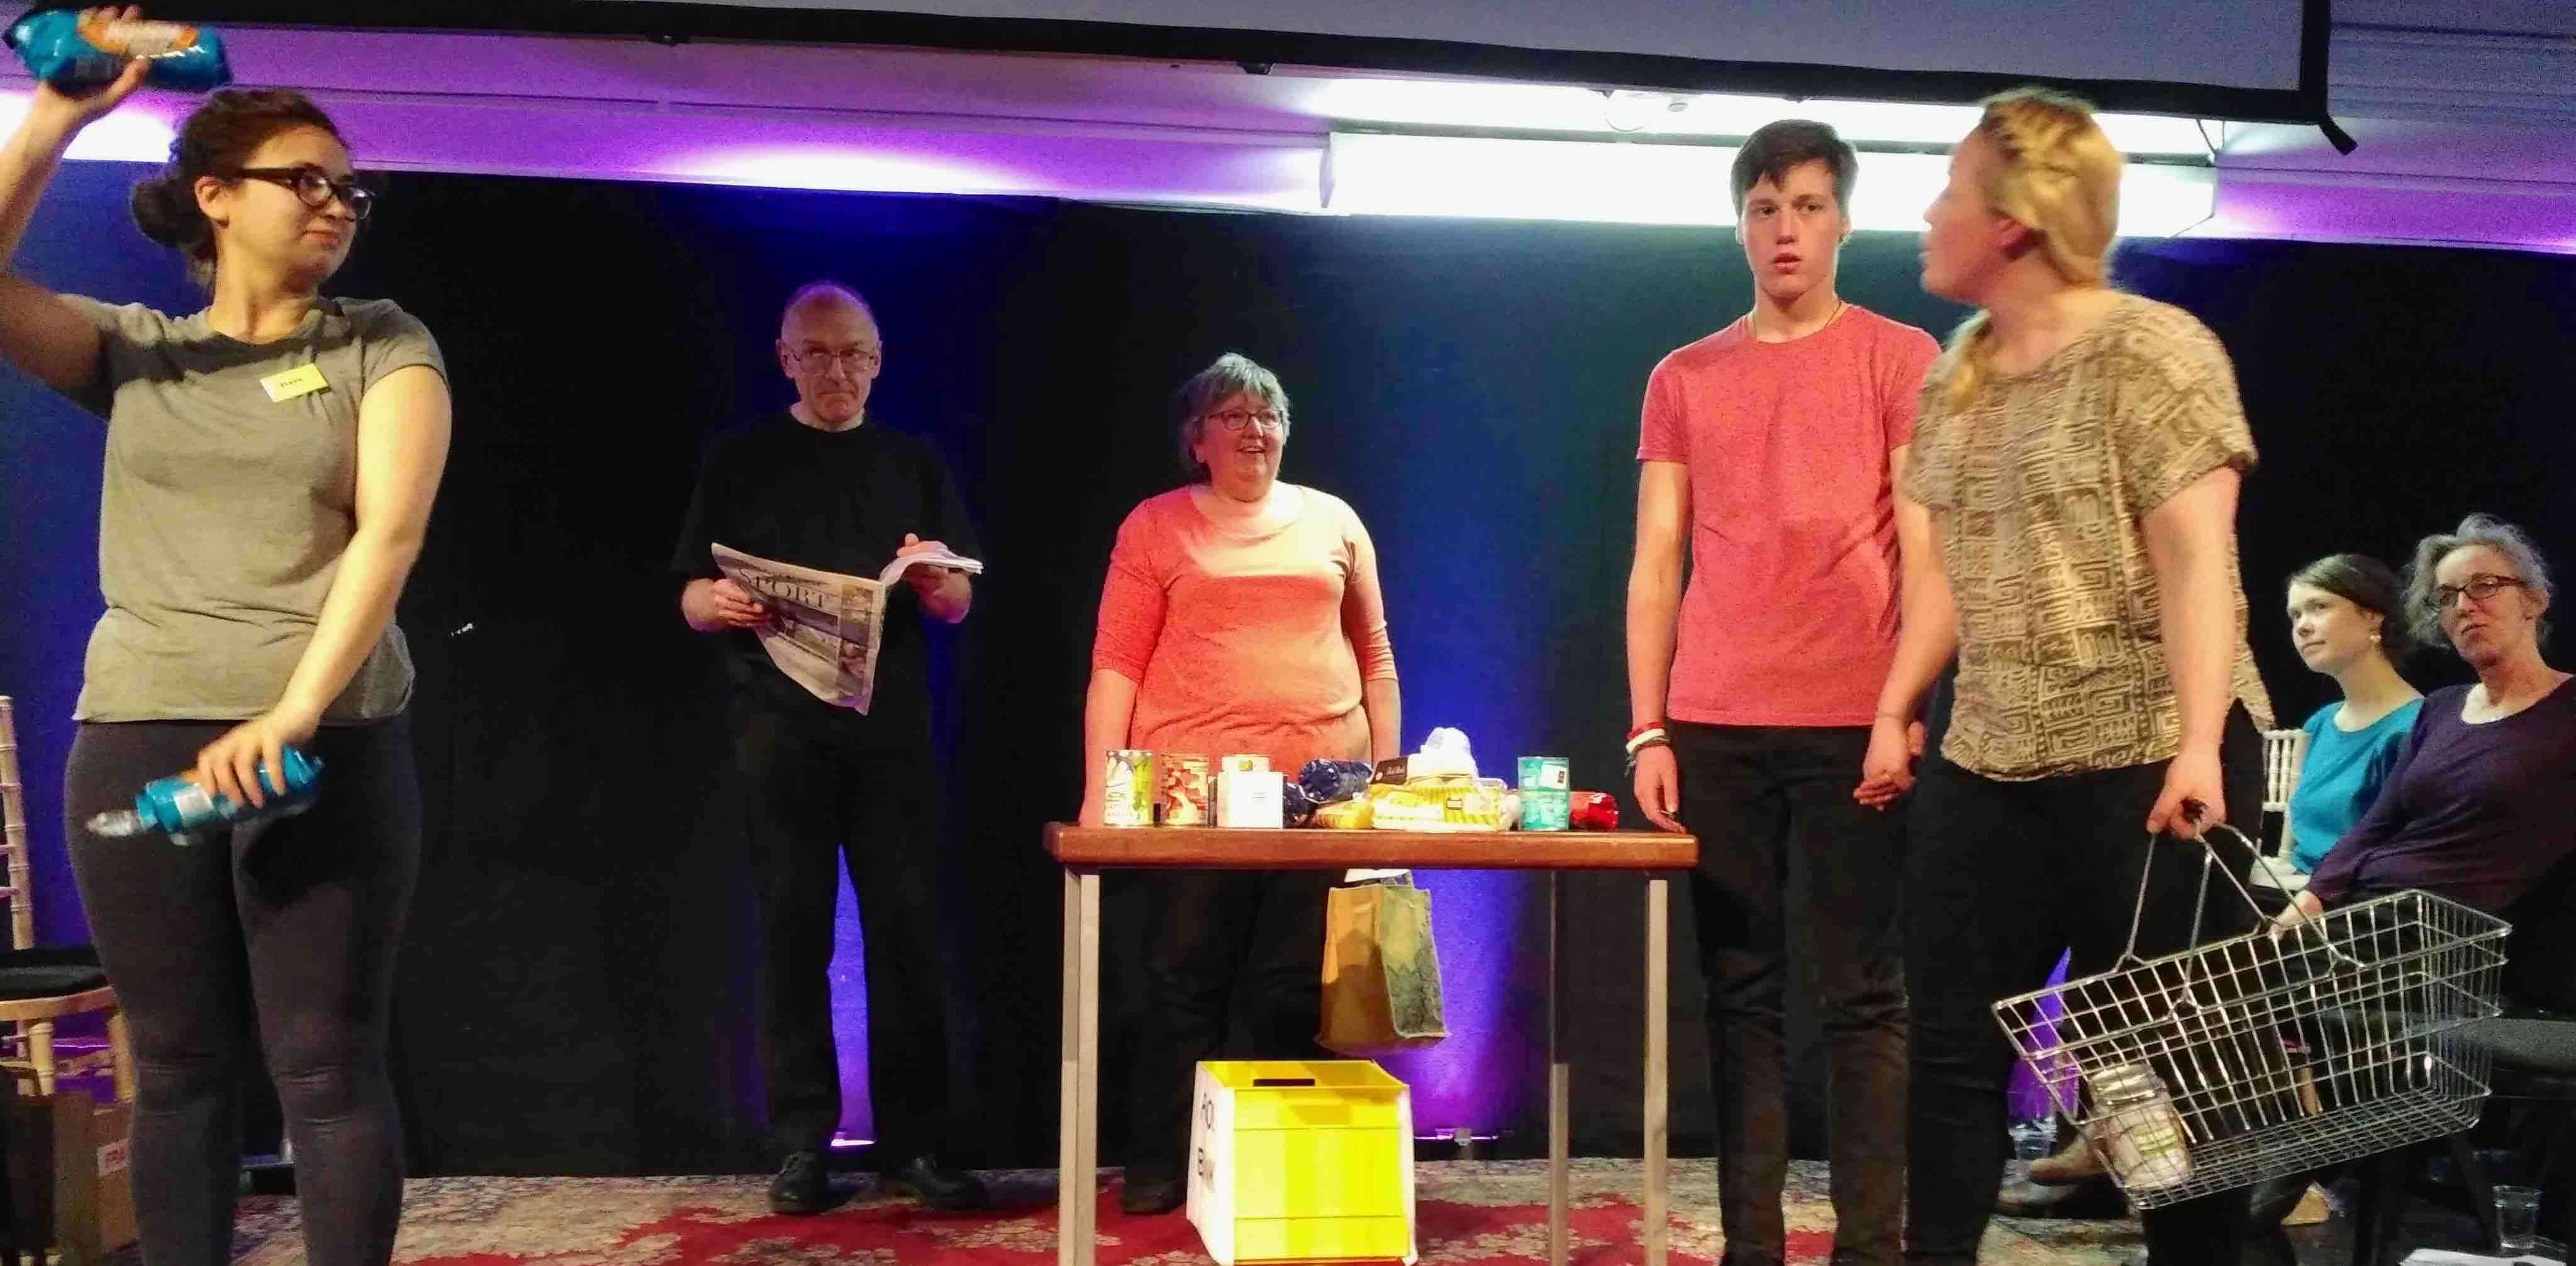 A picture of the play, portraying Sally in the supermarket